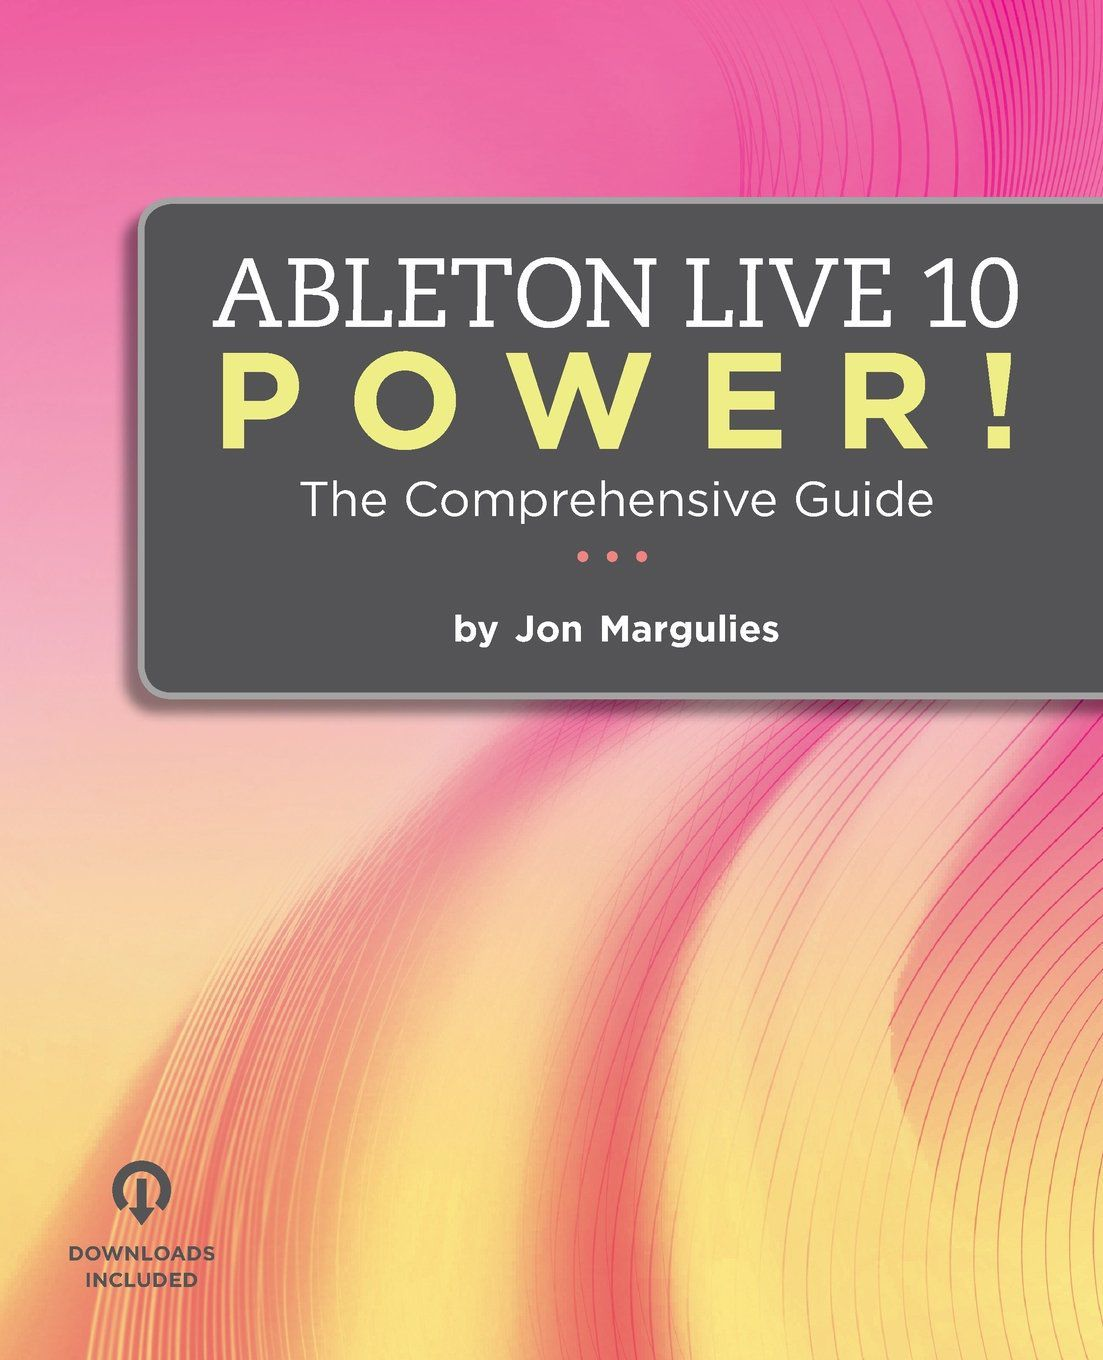 Ableton Live 10 Power